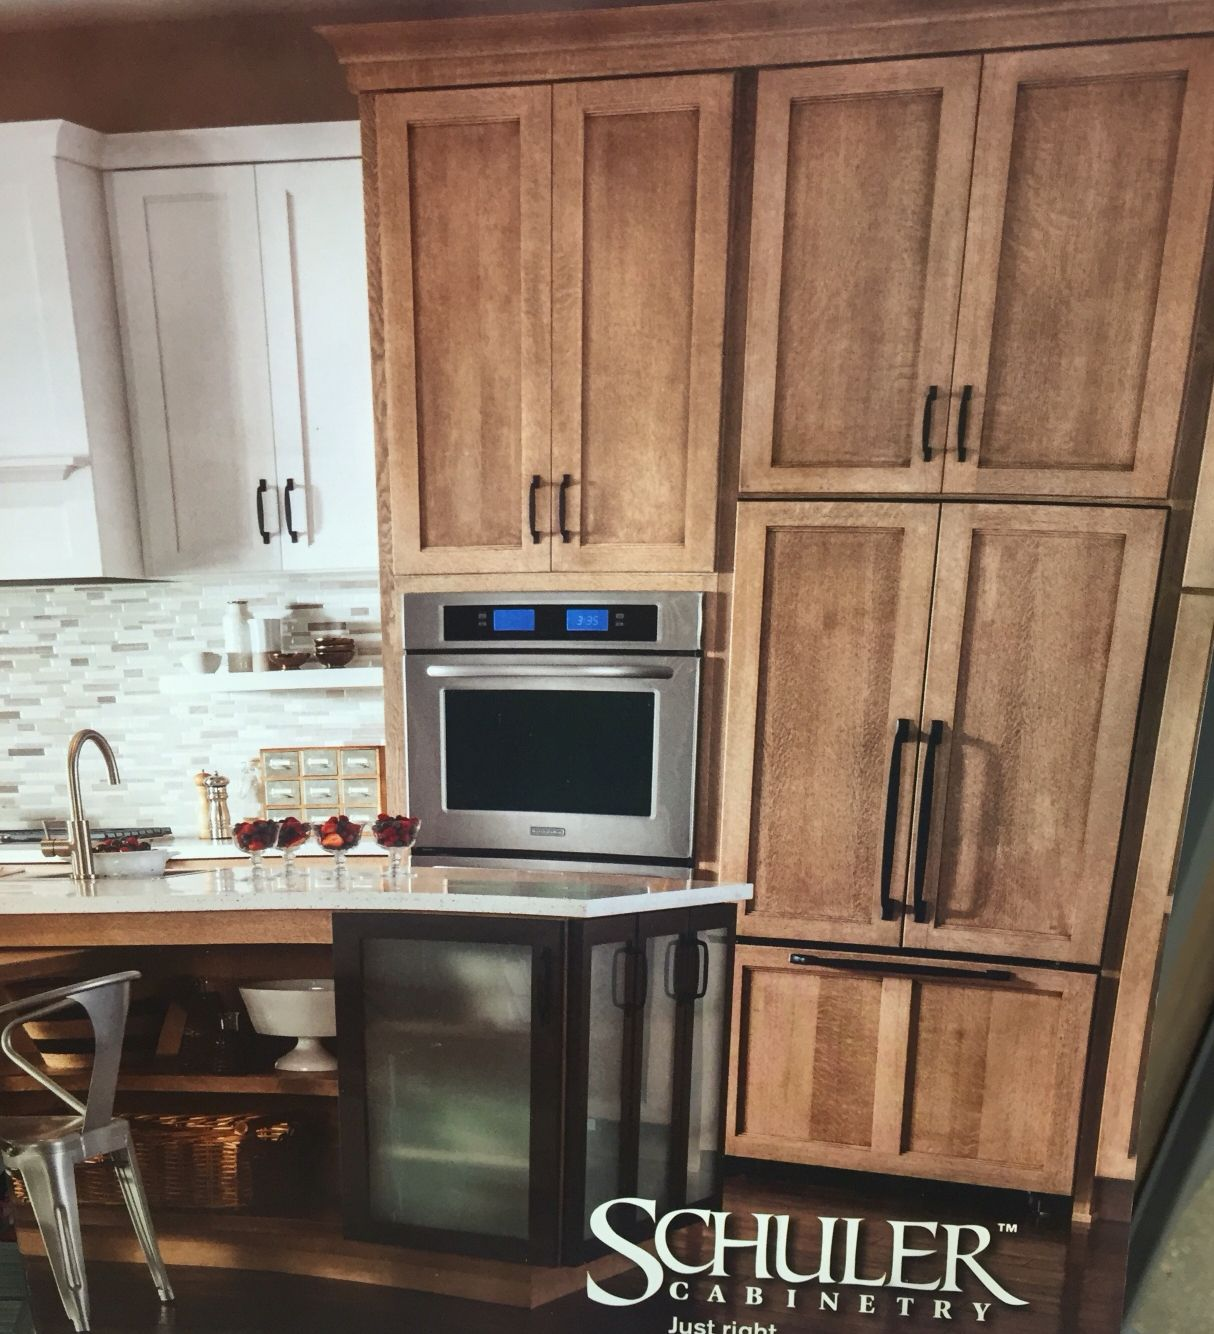 Schuler Cabinet: White And Natural Wood Color